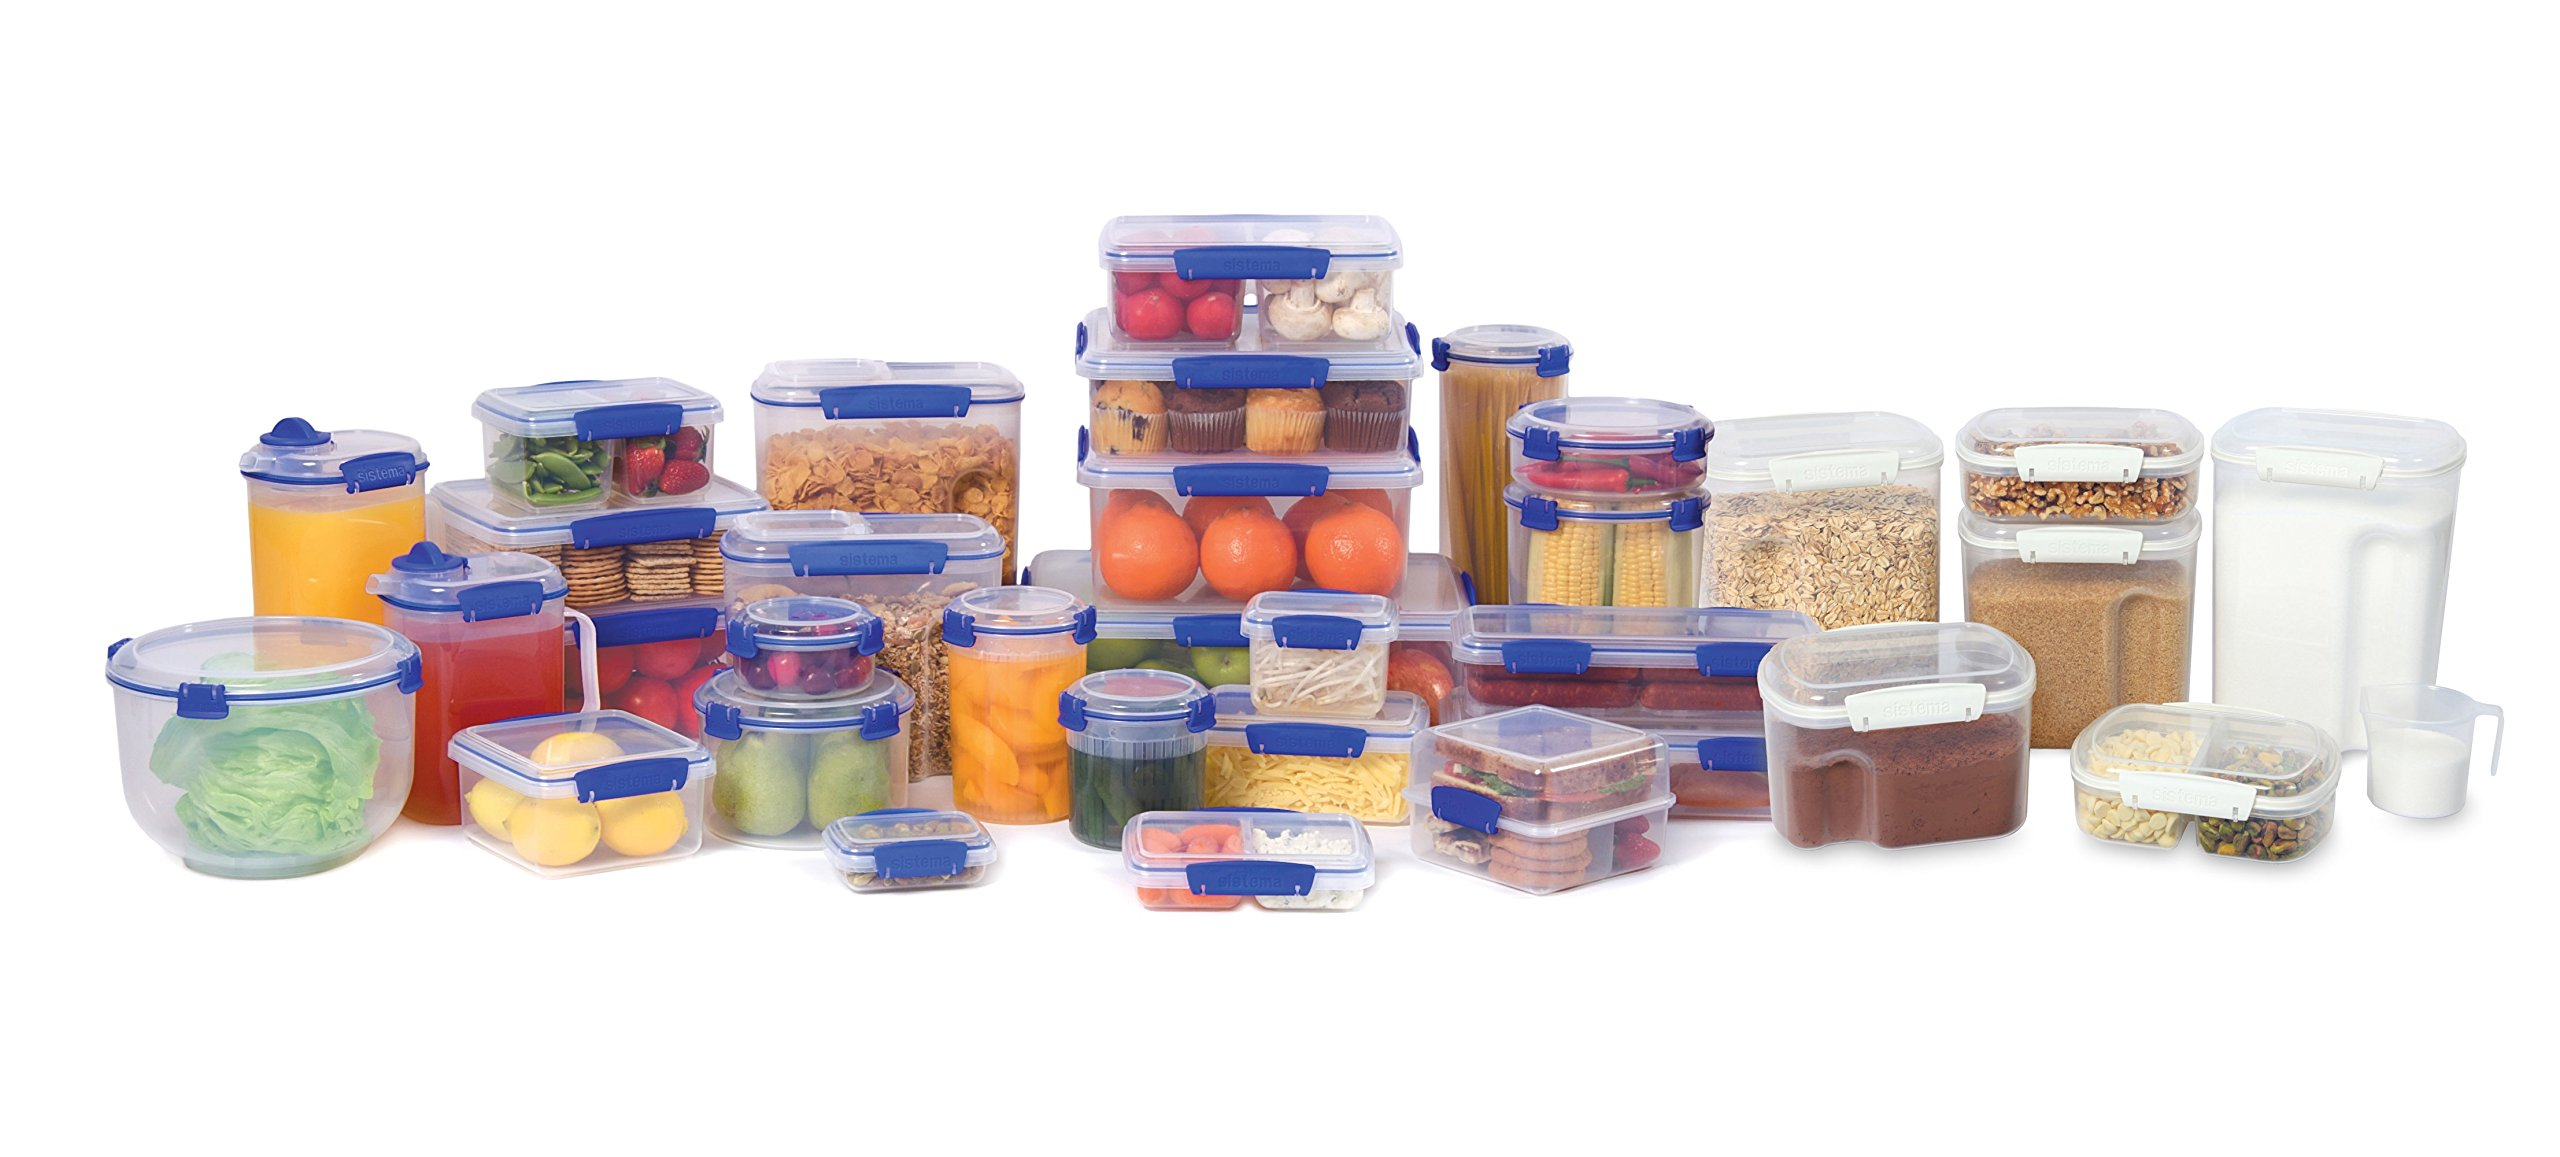 Sistema KLIP IT Collection Sandwich Box Food Storage Container, 15.2 oz./0.4 L, Clear/Blue, 3 Count by Sistema (Image #4)